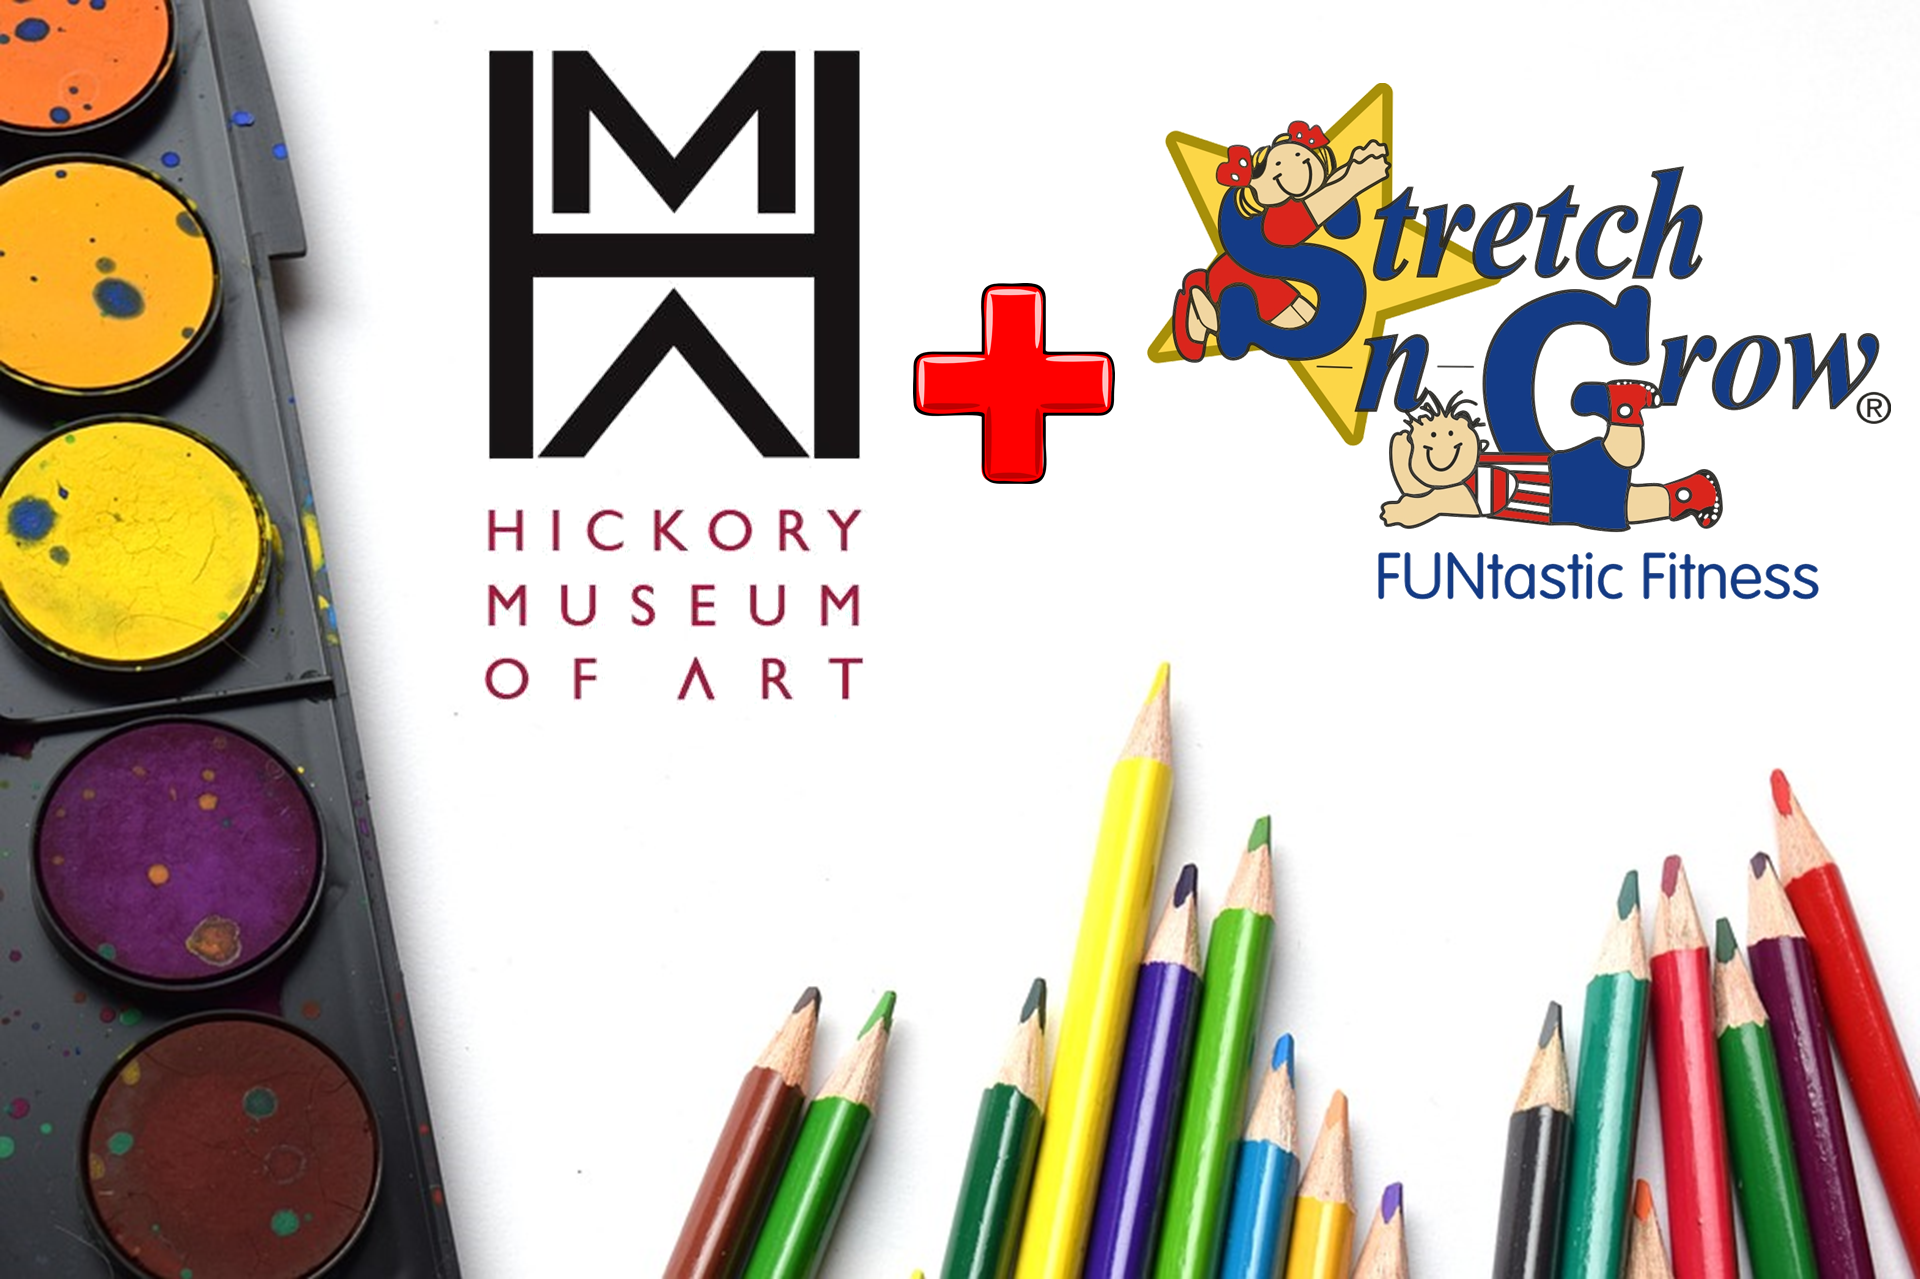 hickory museum of art_stretch and grow.png